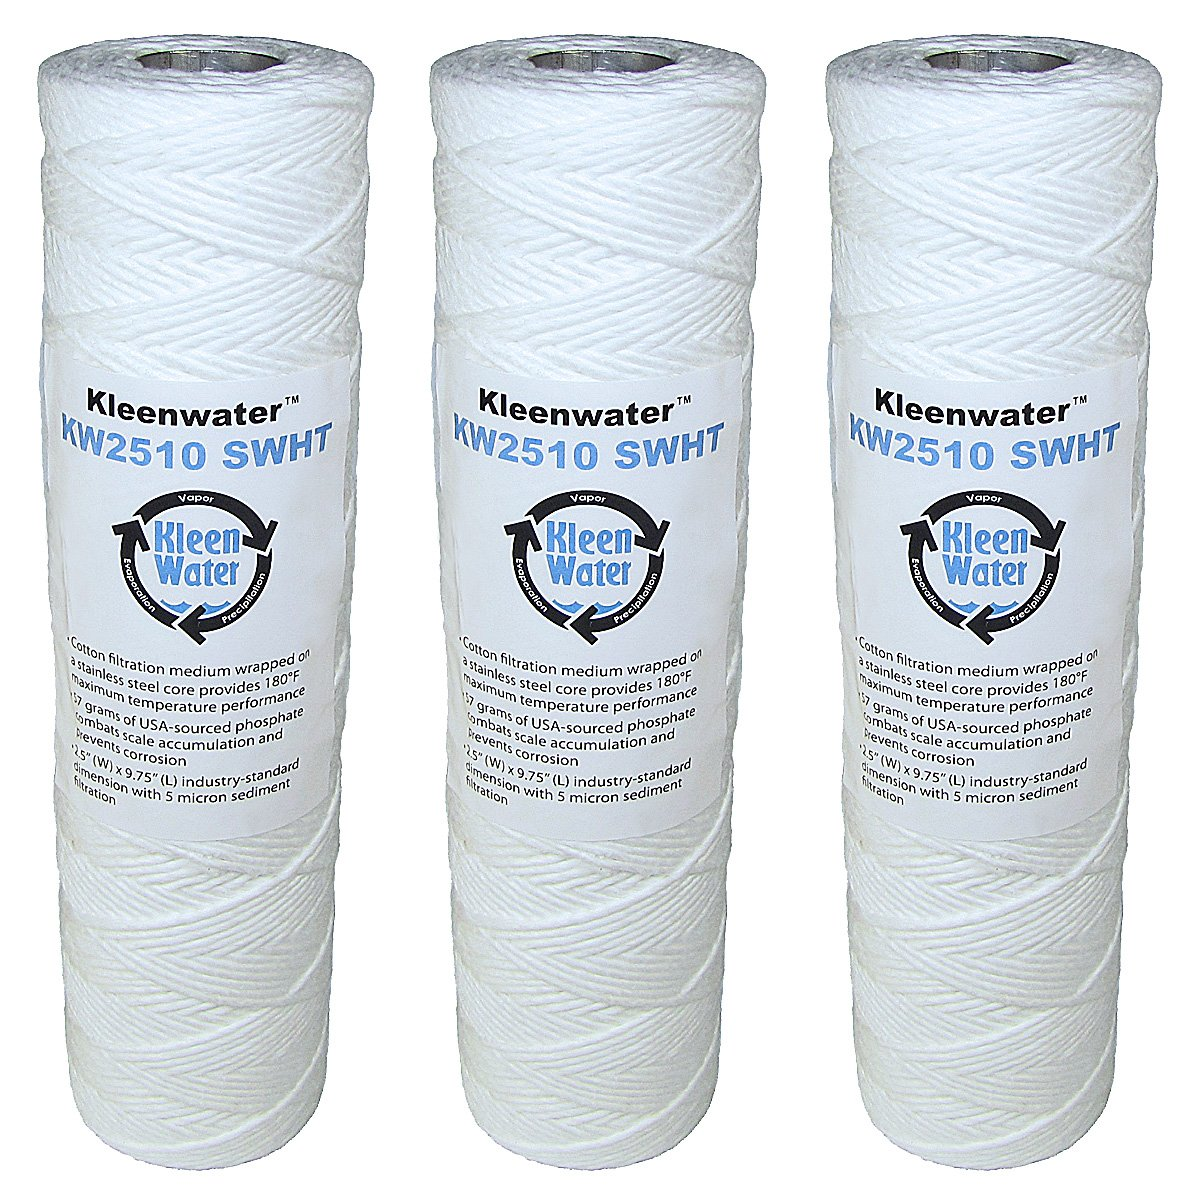 KleenWater High Temperature Water Filters, 2.5 x 9.75 Inch String Wound Cartridges, Stainless Steel Core with Scale Inhibitor, 3 Pack